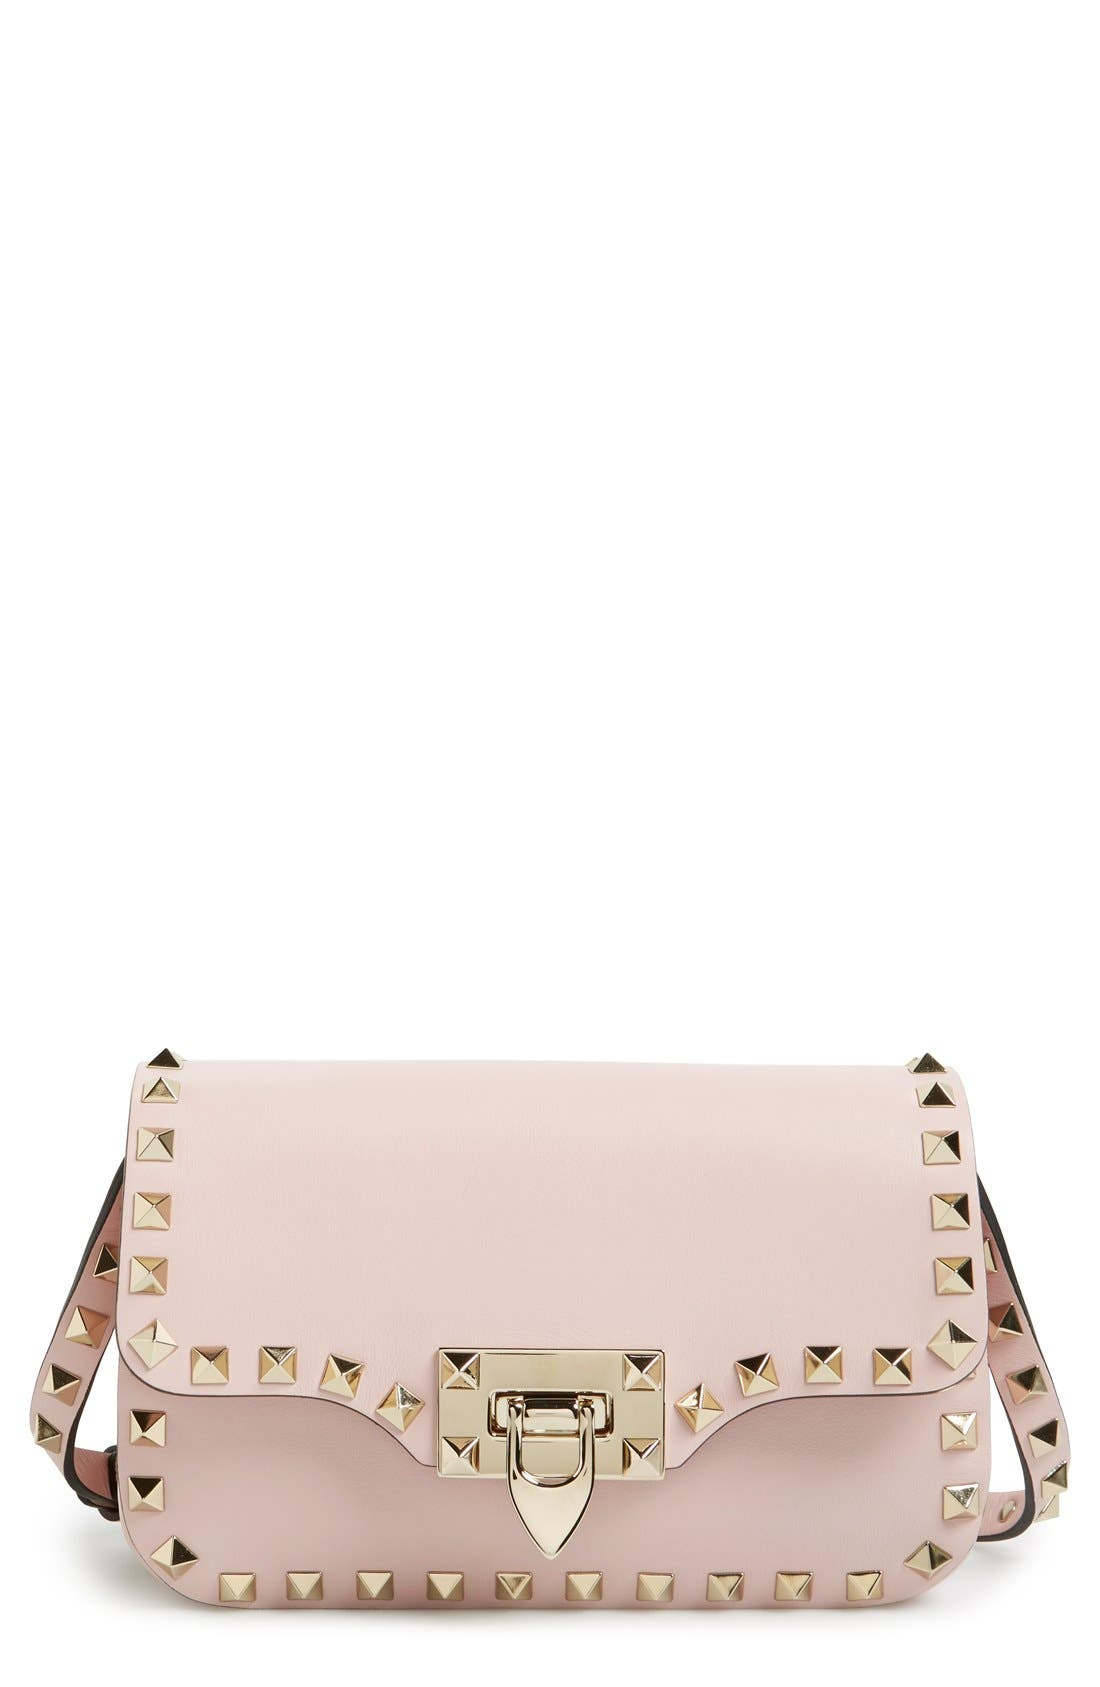 Main Image - Valentino 'Mini Rockstud' Crossbody Bag